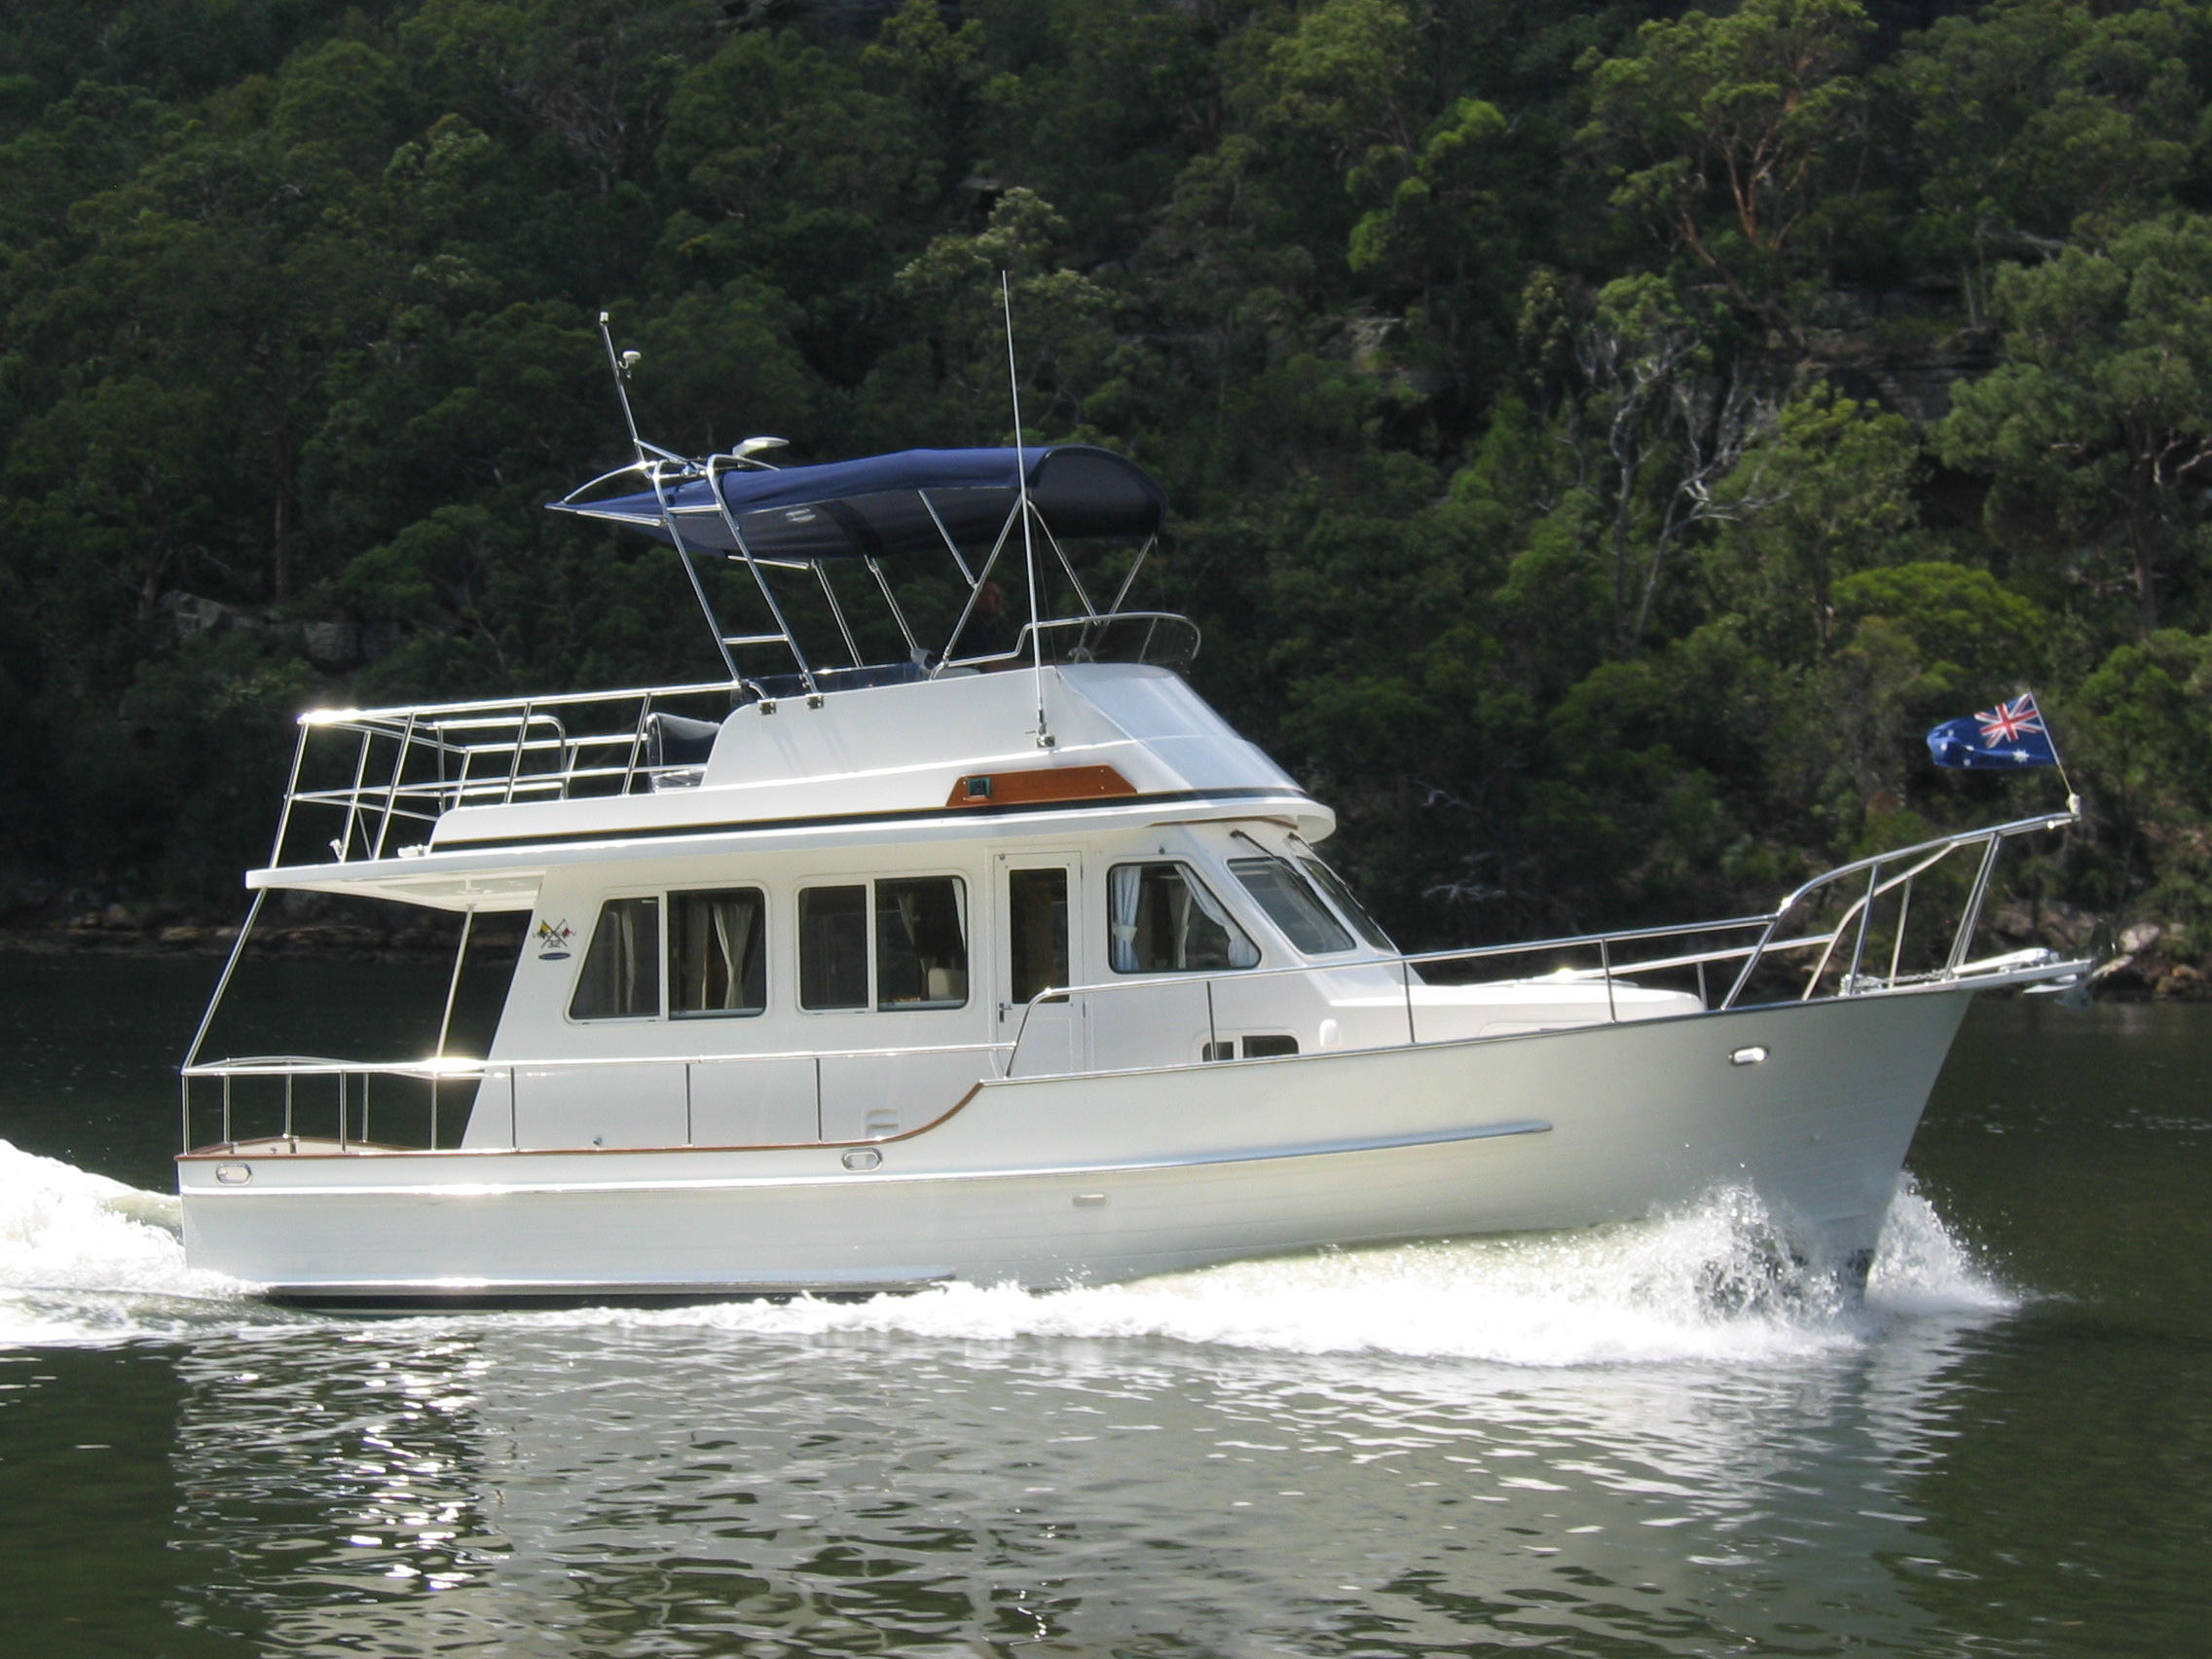 Island Gypsy 32 Eurosedan. Completed in 2006. Cruising up the Hawkesbury River just north of Sydney.